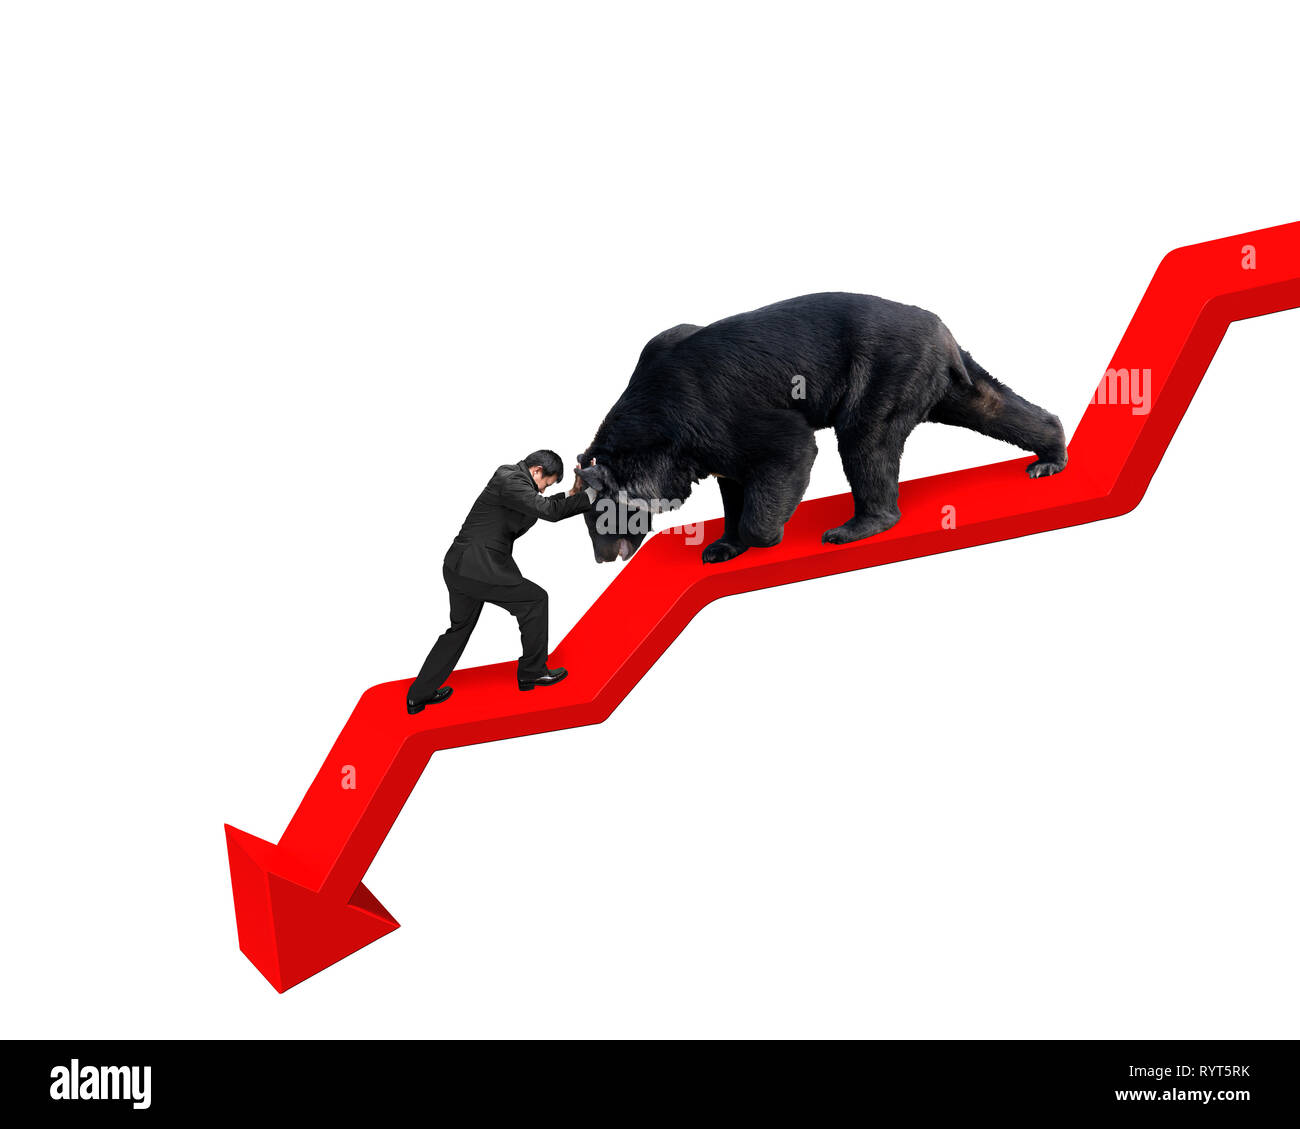 Businessman against black bear on red arrow downward trend line with white background. Fight back bearish market concept. - Stock Image